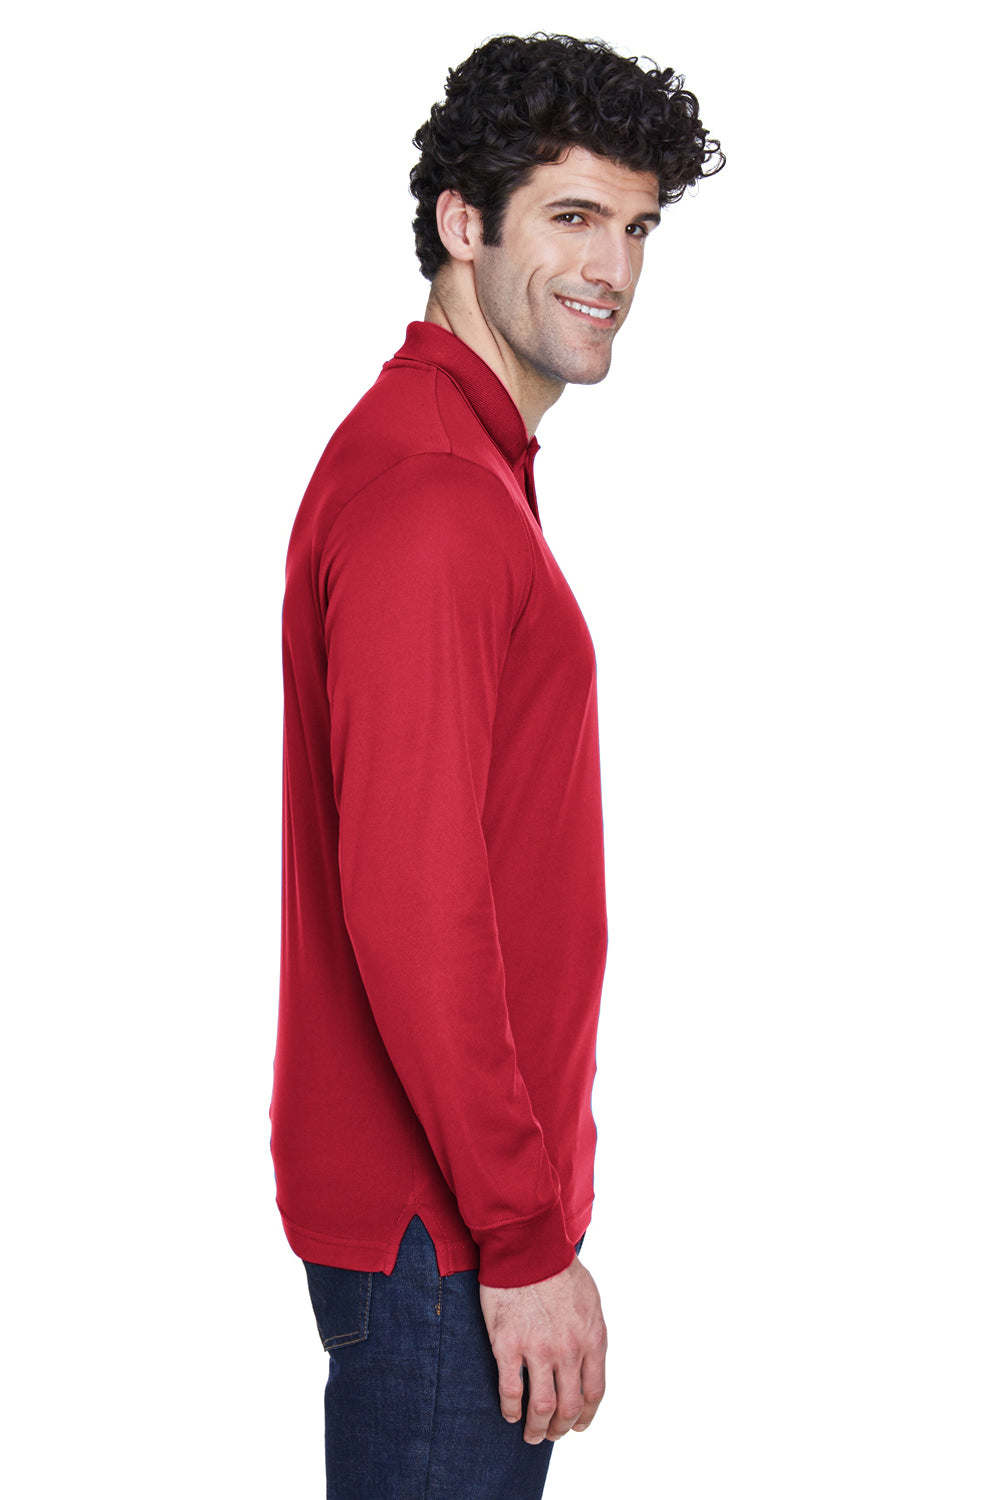 Core 365 88192 Mens Pinnacle Performance Moisture Wicking Long Sleeve Polo Shirt Red Side